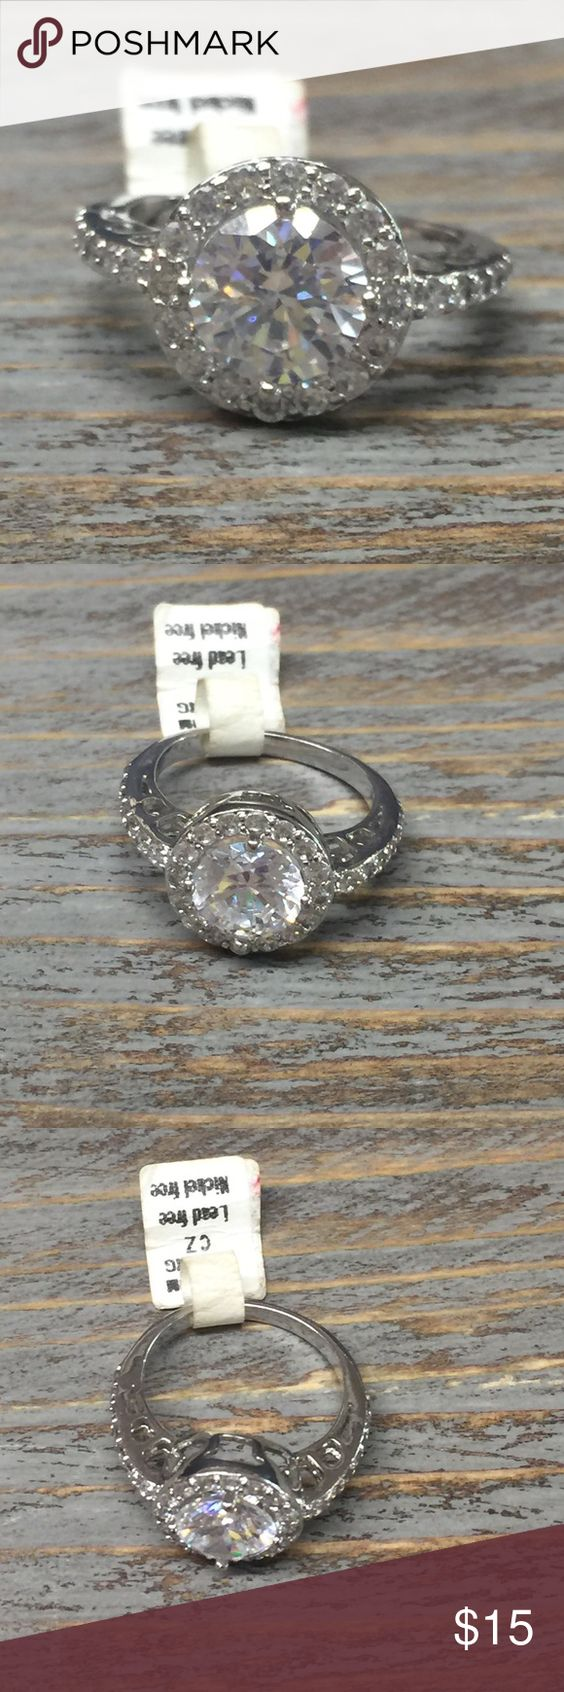 Ring Rhodium Plating. CZ. Lead free. Nickel free. New with tags Jewelry Rings